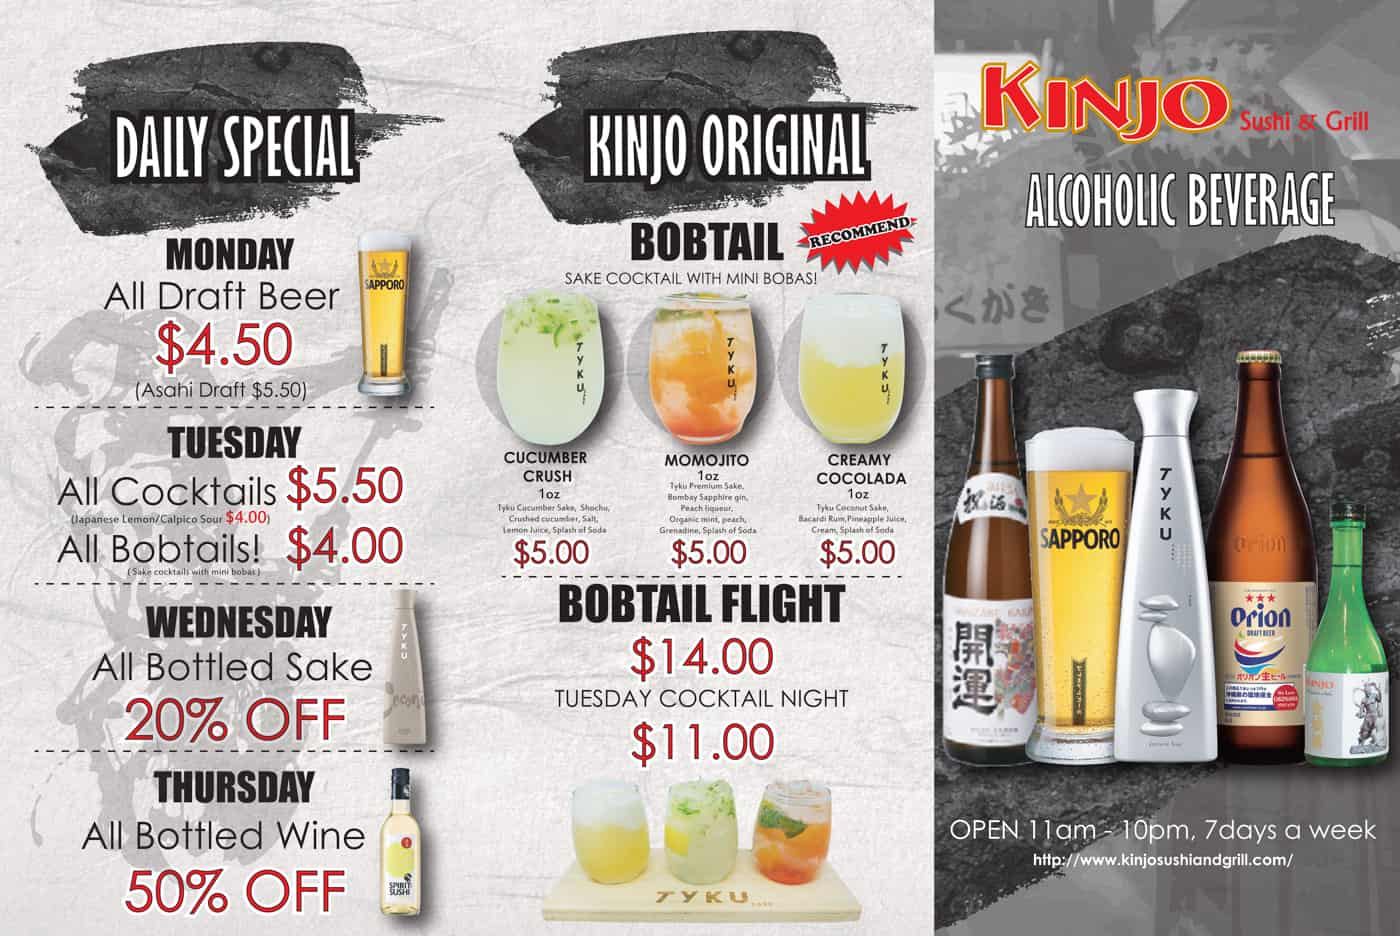 Kinjo District Drink Menu 2